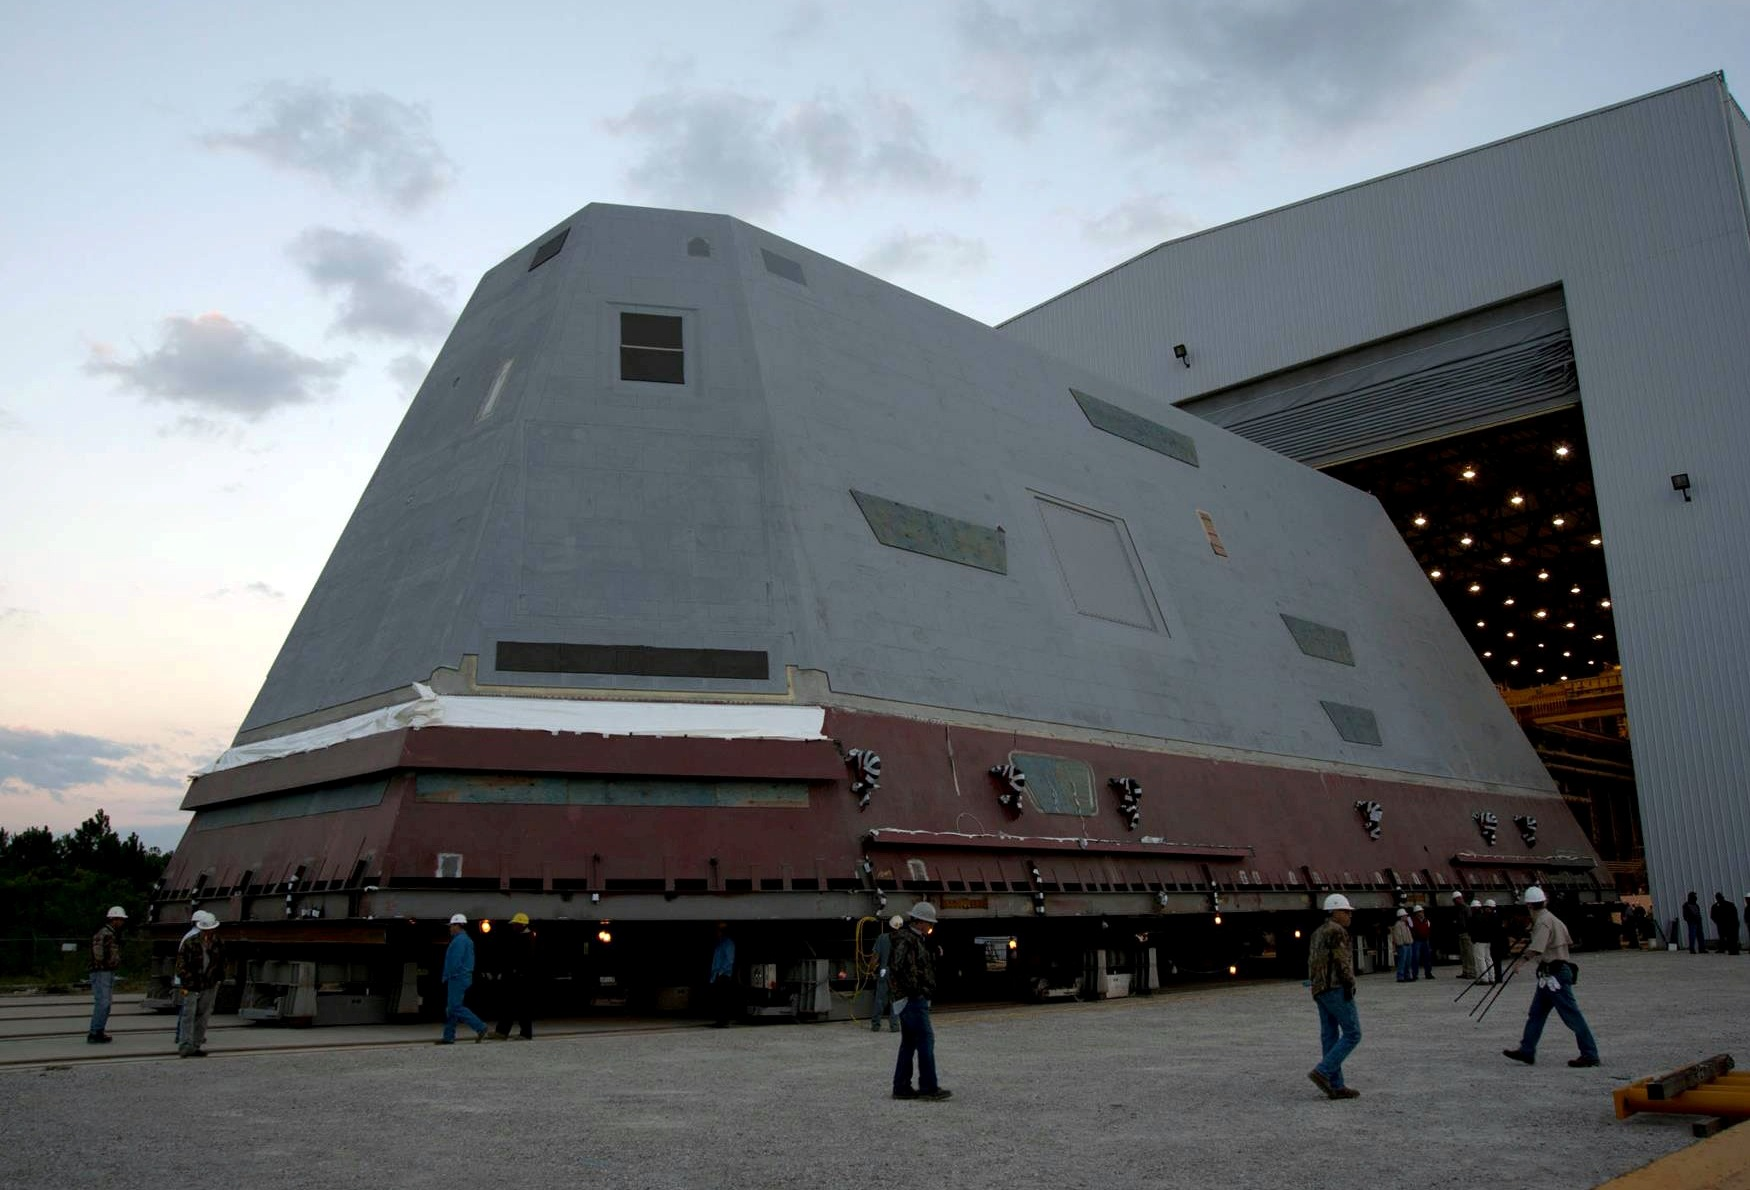 USS Zumwalt, DDG 1000, 900-ton Deckhouse - Huntington Ingalls Industries, and Defense News, 2012